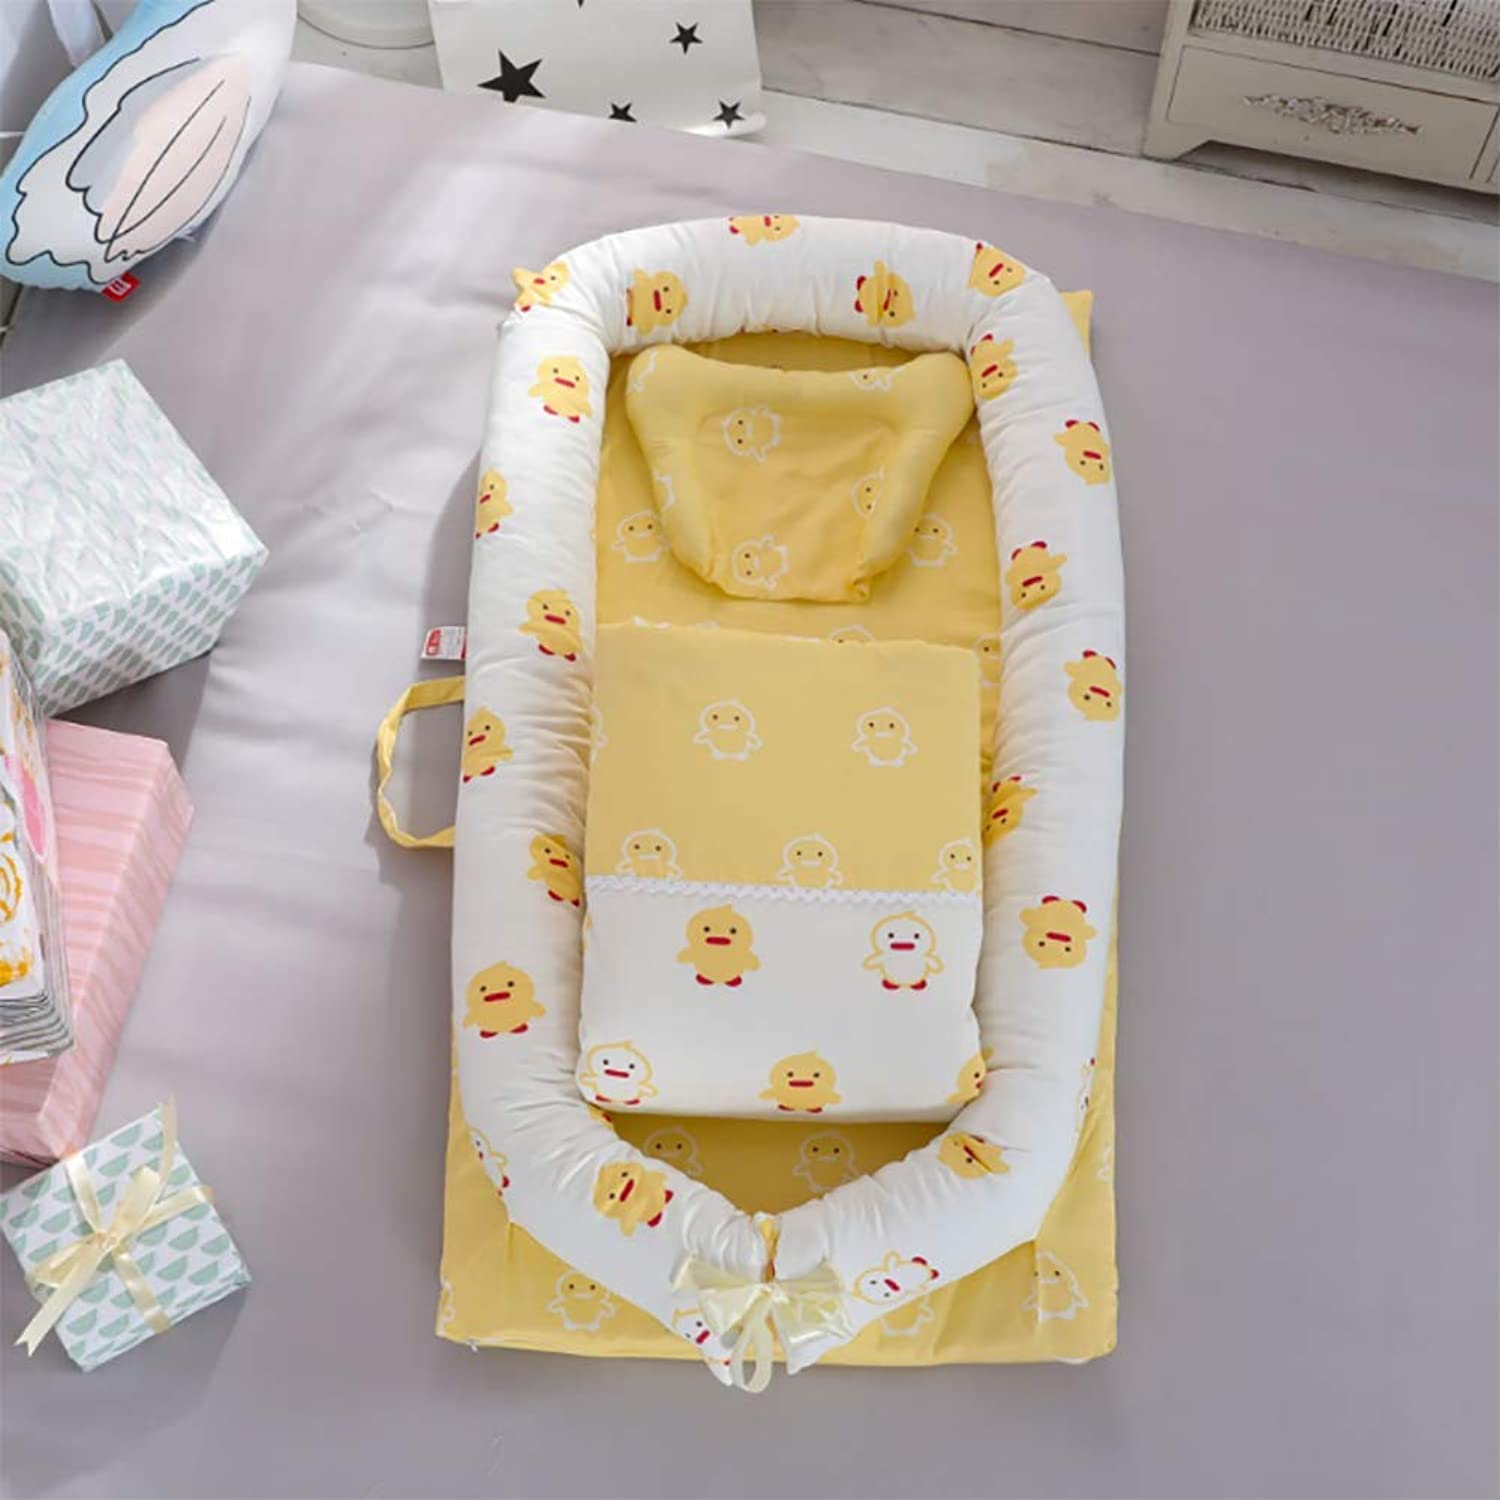 Crib Cotton Multi-Function Folding Portable Travel Baby Bionic Crib Suitable for Age 0-24 Months Baby (Removable Quilt),E